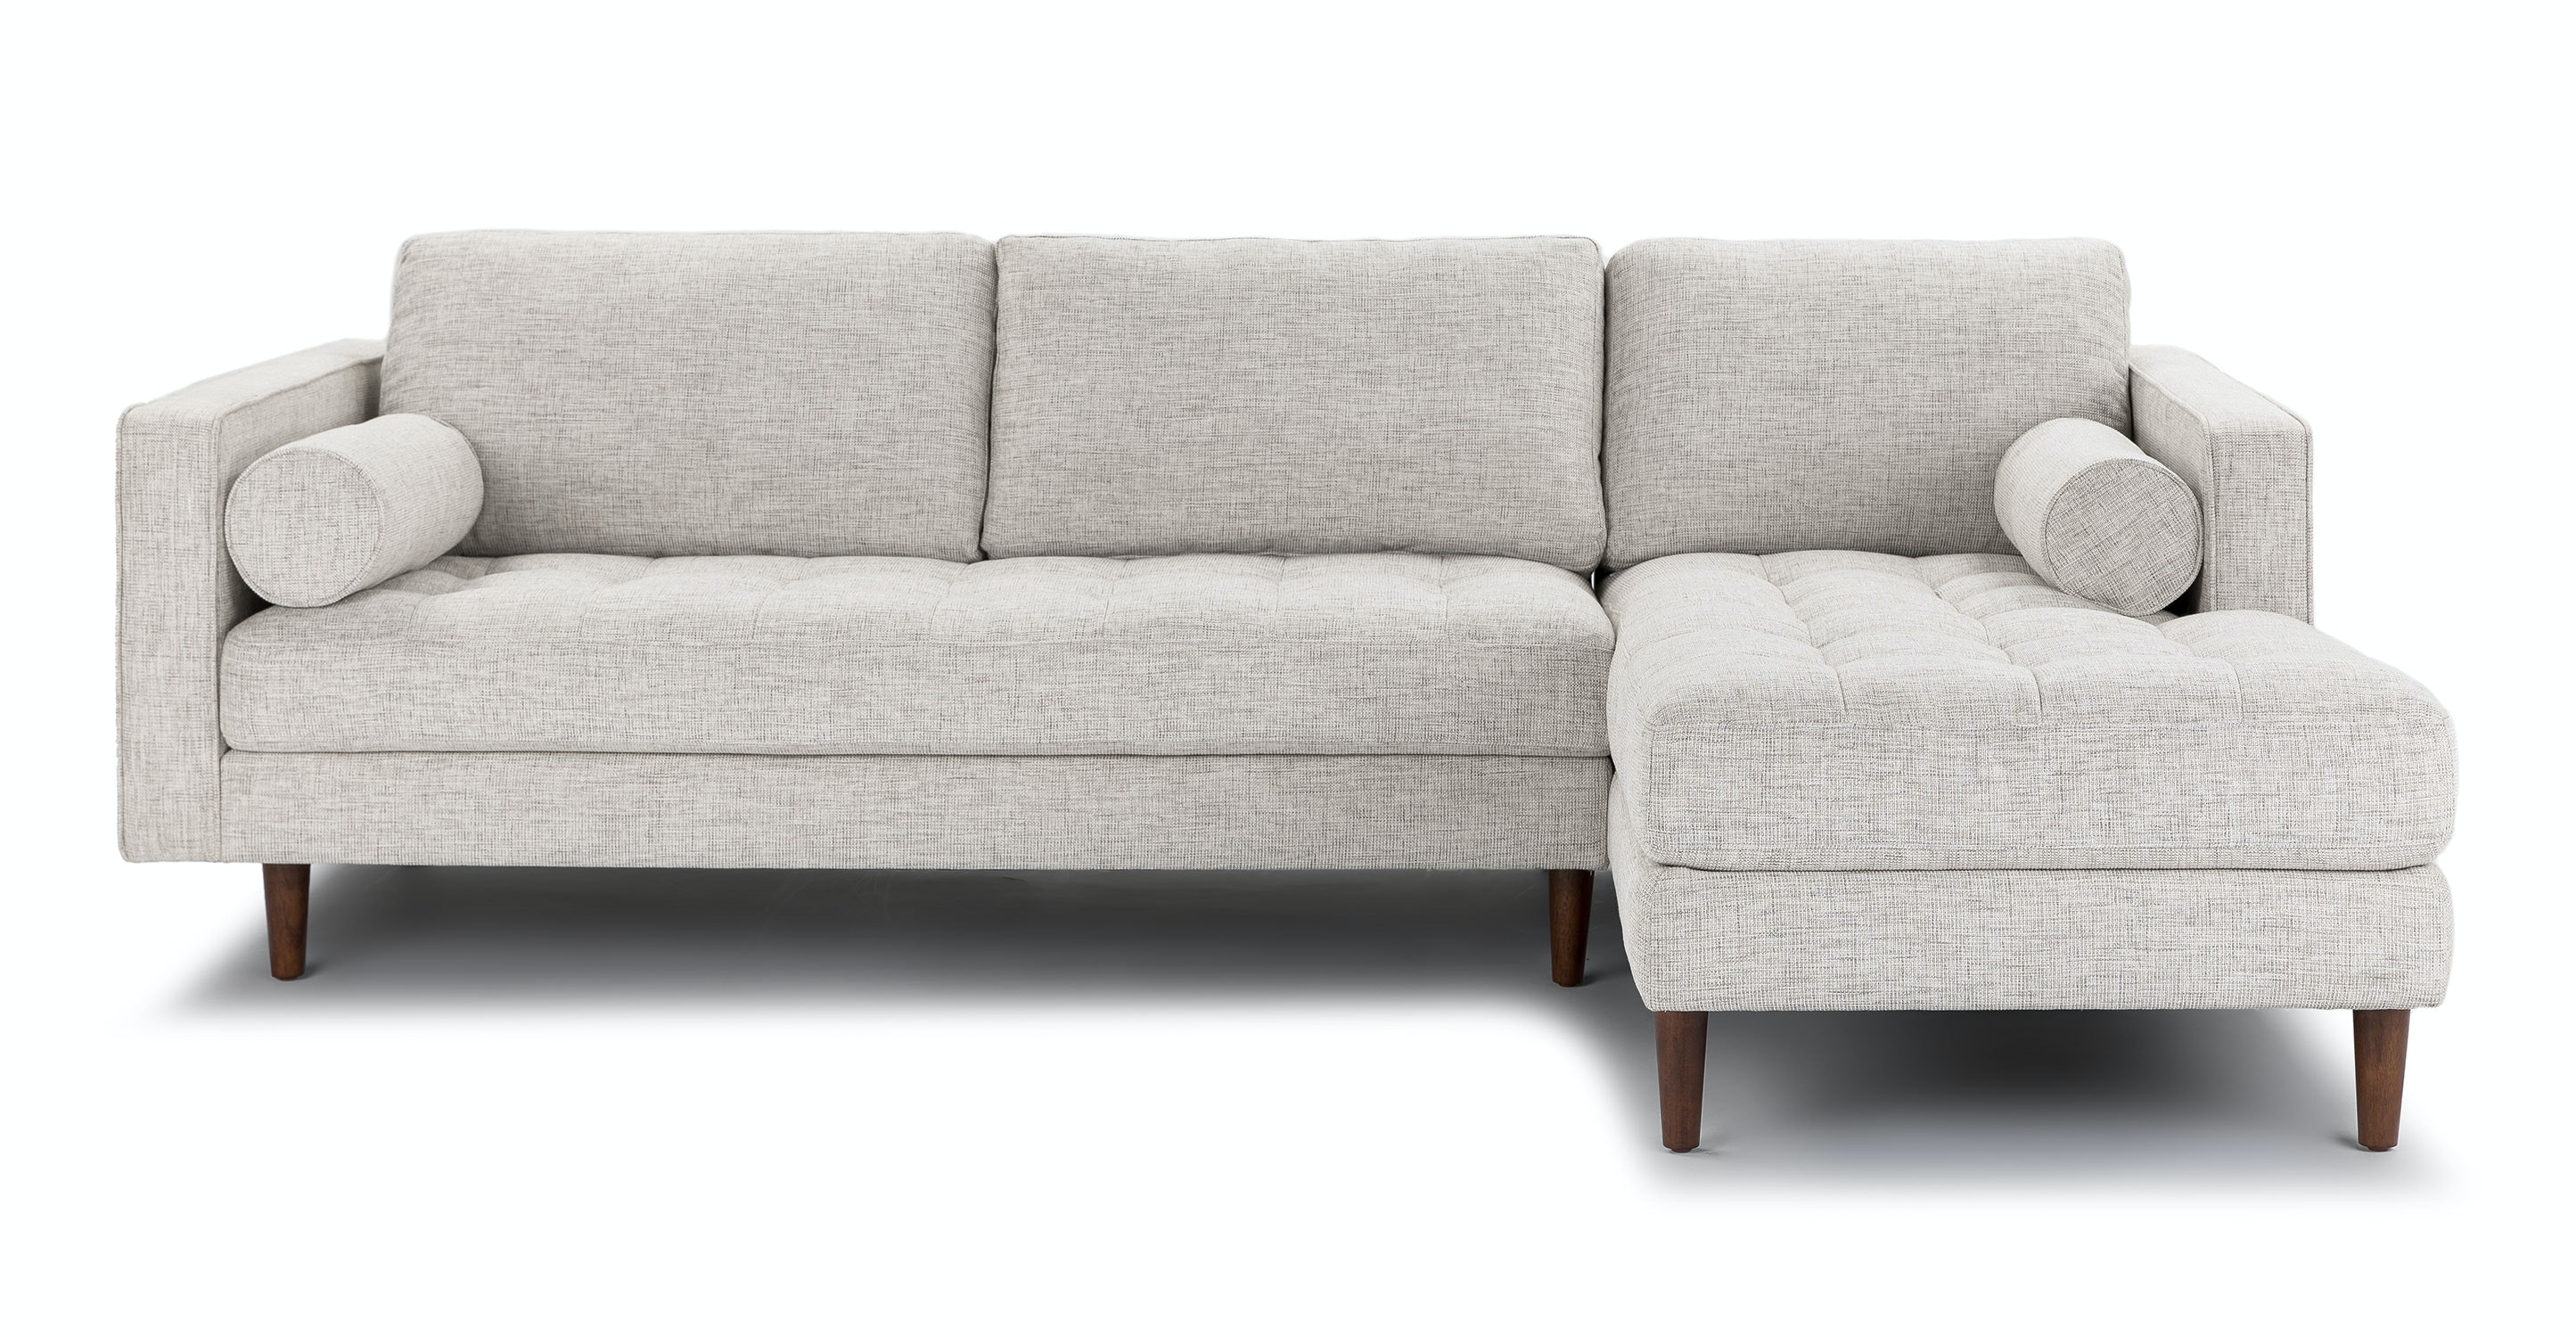 Merveilleux Sven Birch Ivory Right Sectional Sofa   Sectionals   Article | Modern,  Mid Century And Scandinavian Furniture